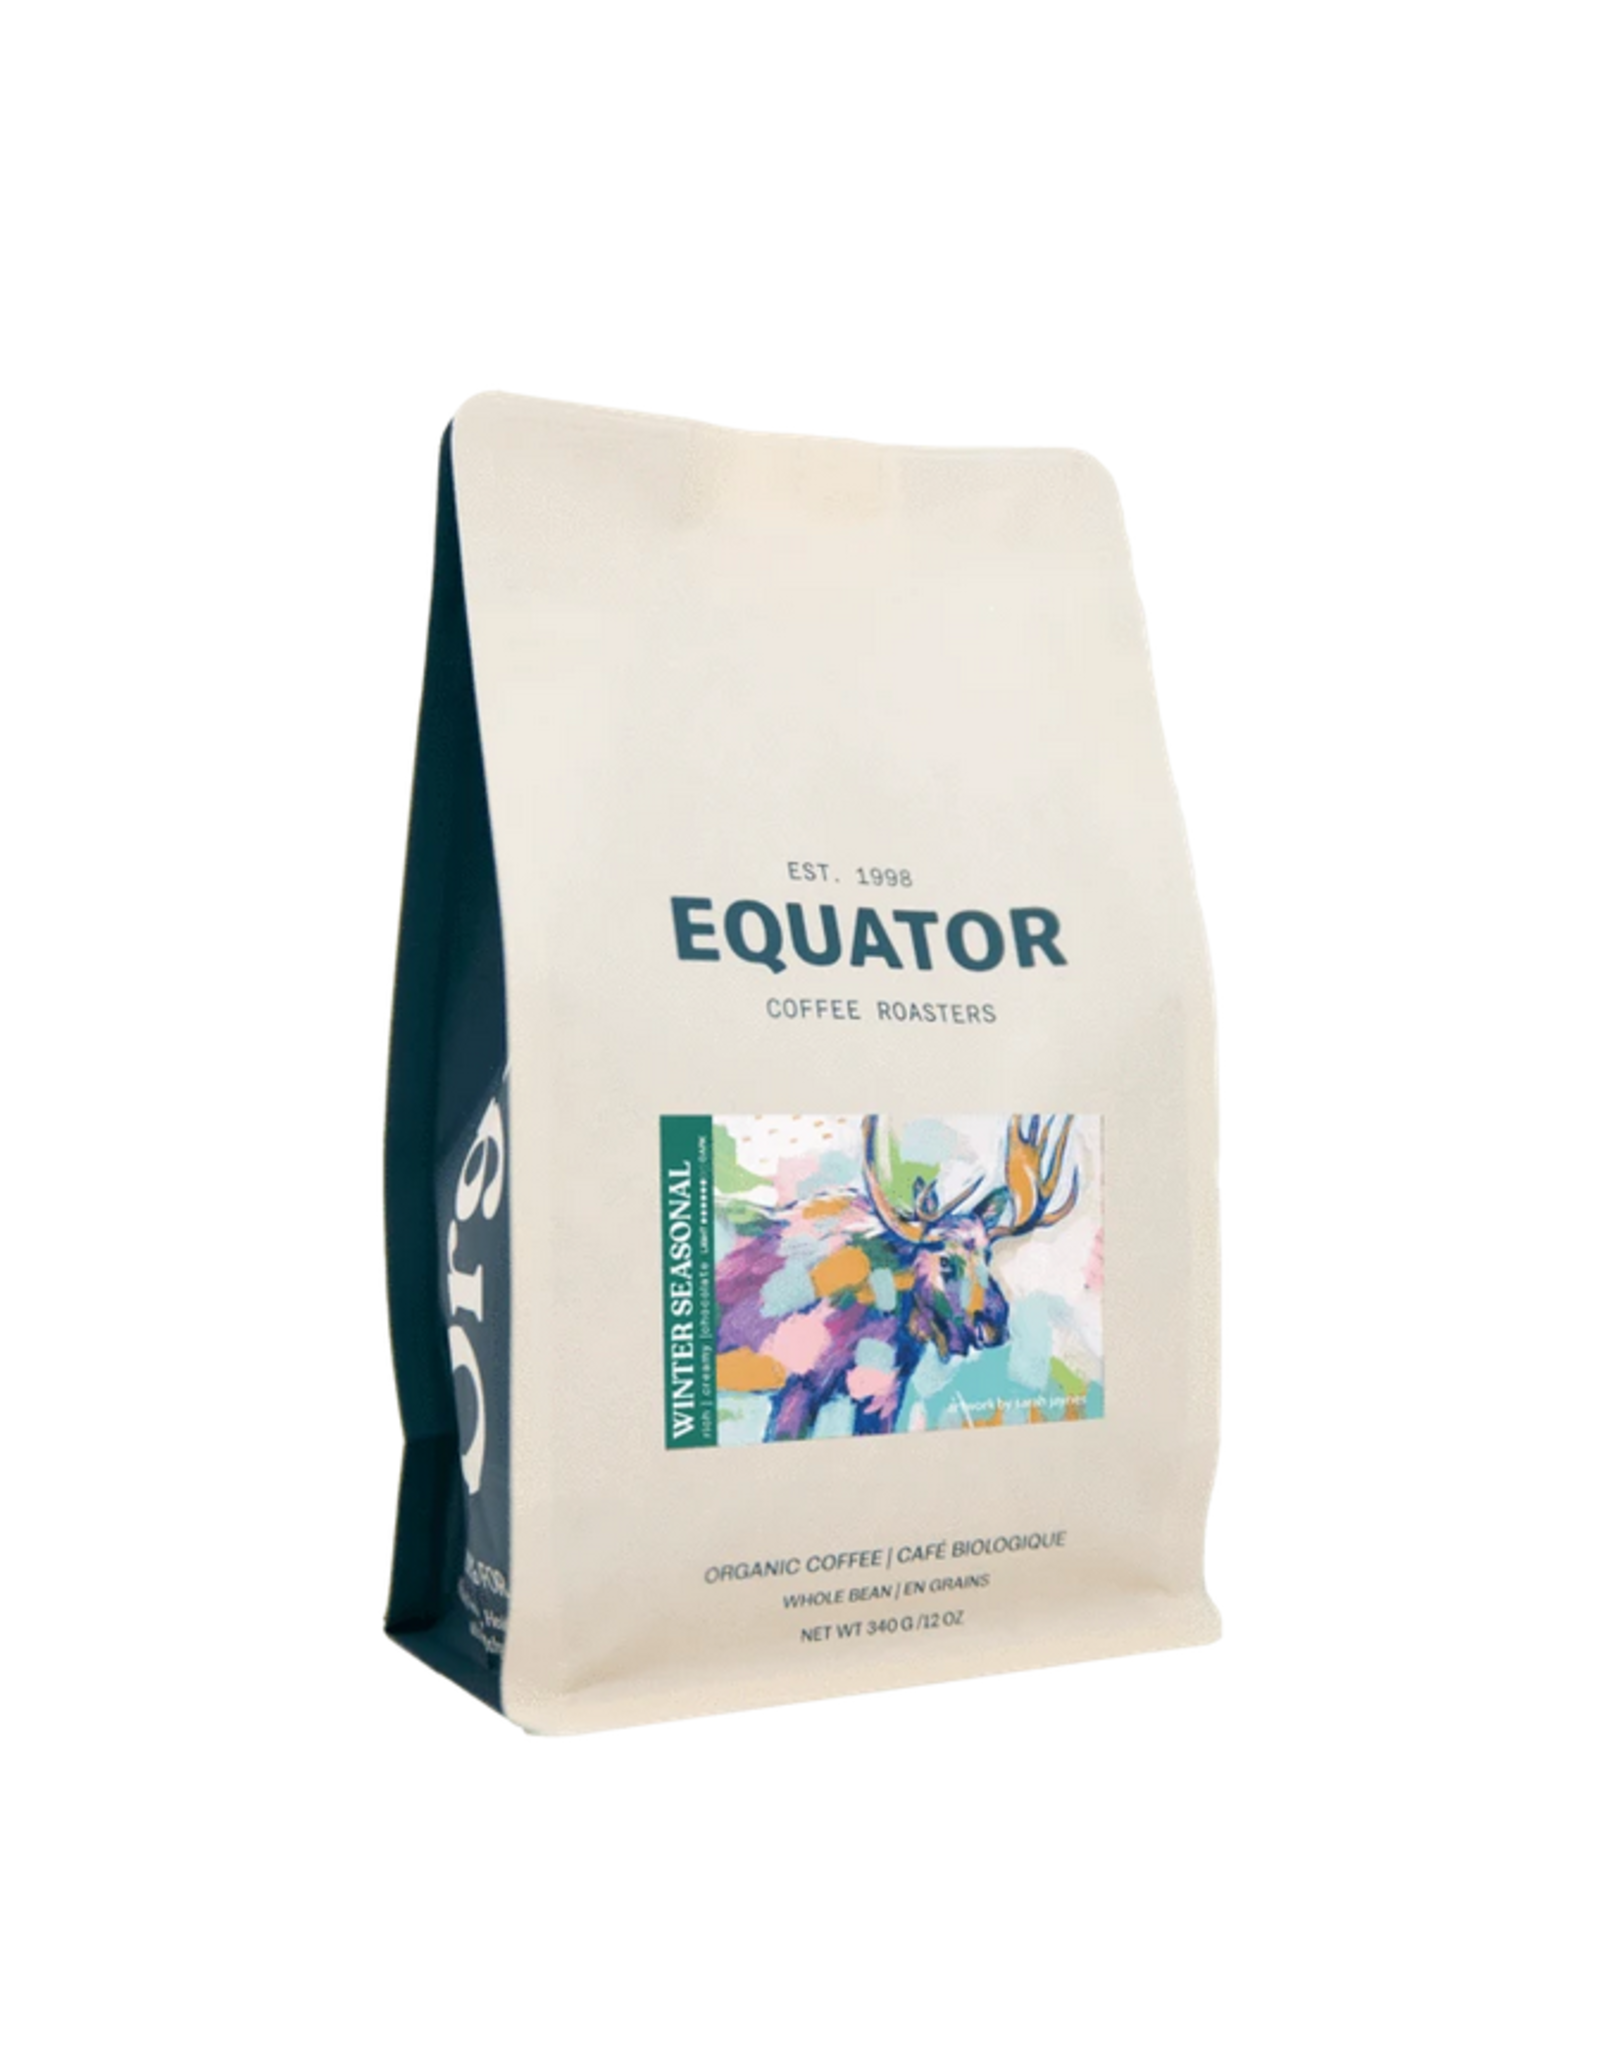 Equator Coffee Roasters Equator Coffee, Winter Seasonal Blend, 340g Beans